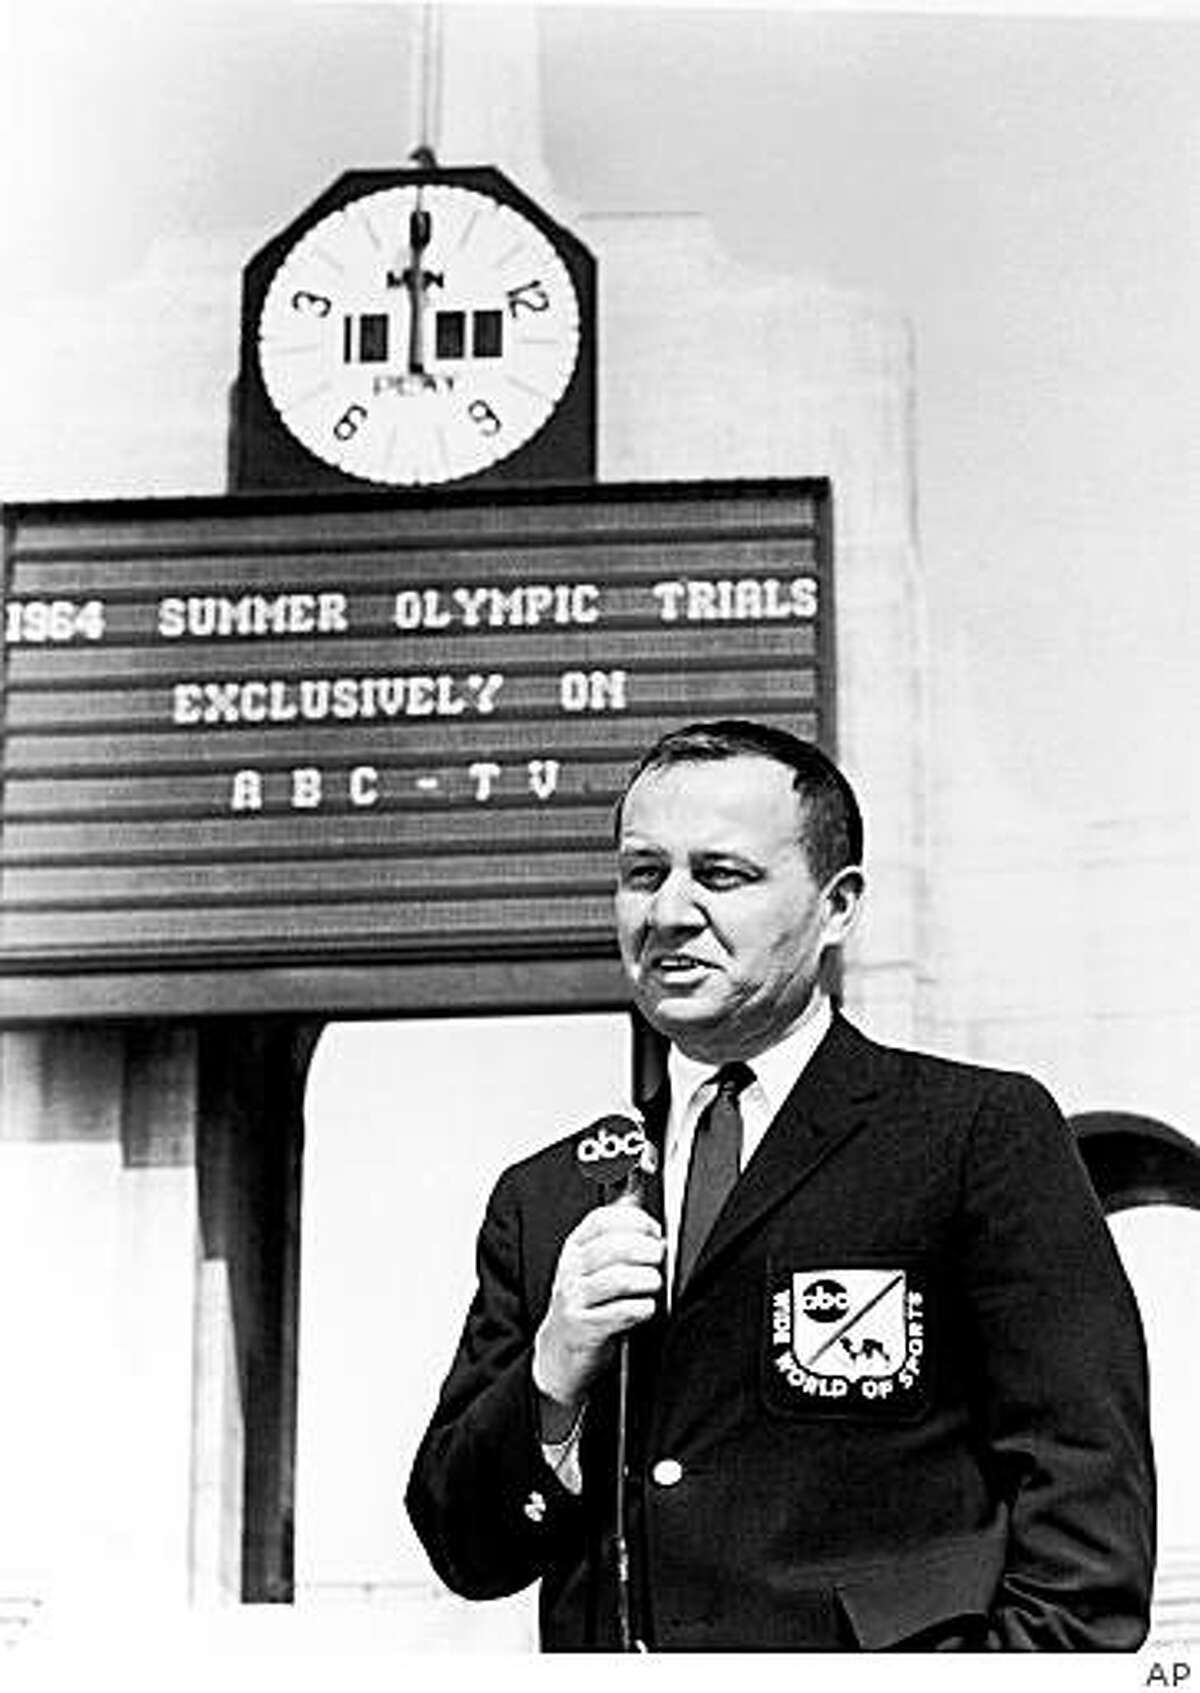 **FILE**ABC Sports commentator Jim McKay, seen here on June 23, 1964 . McKay, the veteran sportscaster thrust into the tragic role of telling Americans about the tragedy at the 1972 Munich Olympics, Saturday June 7, 2008. He was 86.(AP Photo)